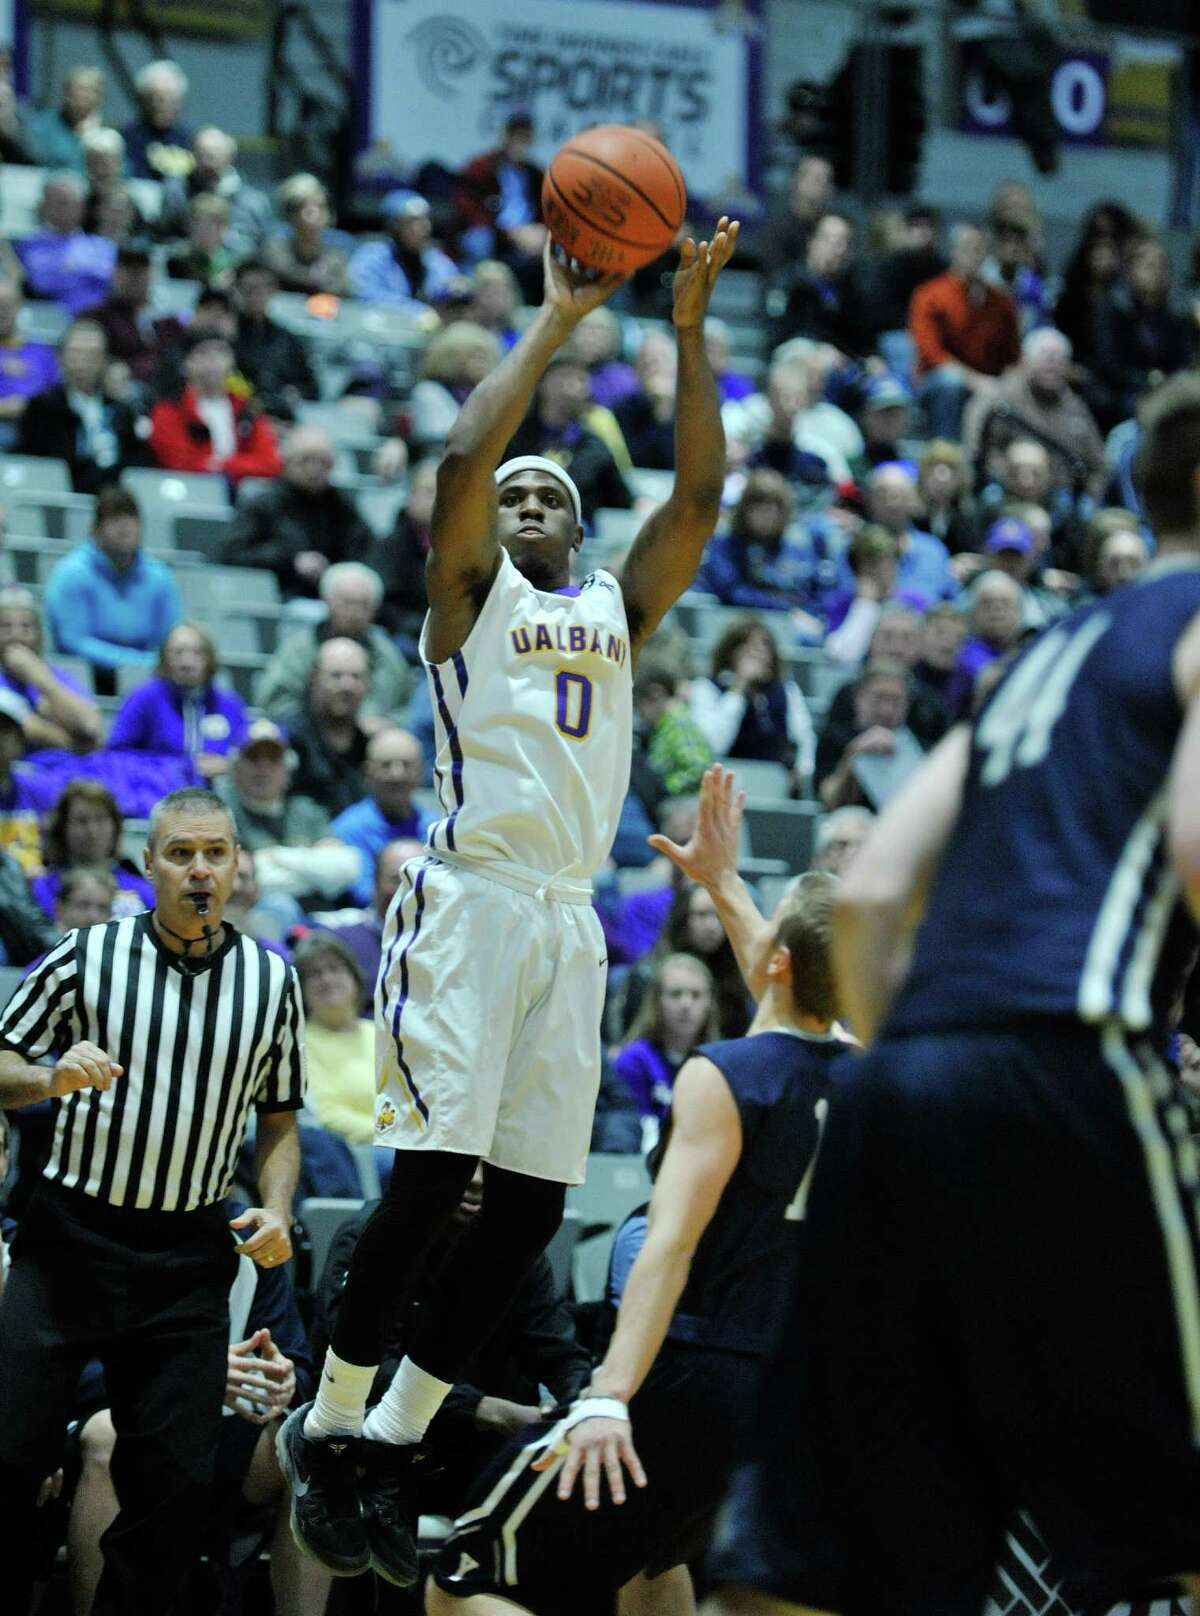 Evan Singletary of UAlbany puts up a three-pointer over a Yale player during their game on Sunday, Nov. 29, 2015, in Albany, N.Y. (Paul Buckowski / Times Union)